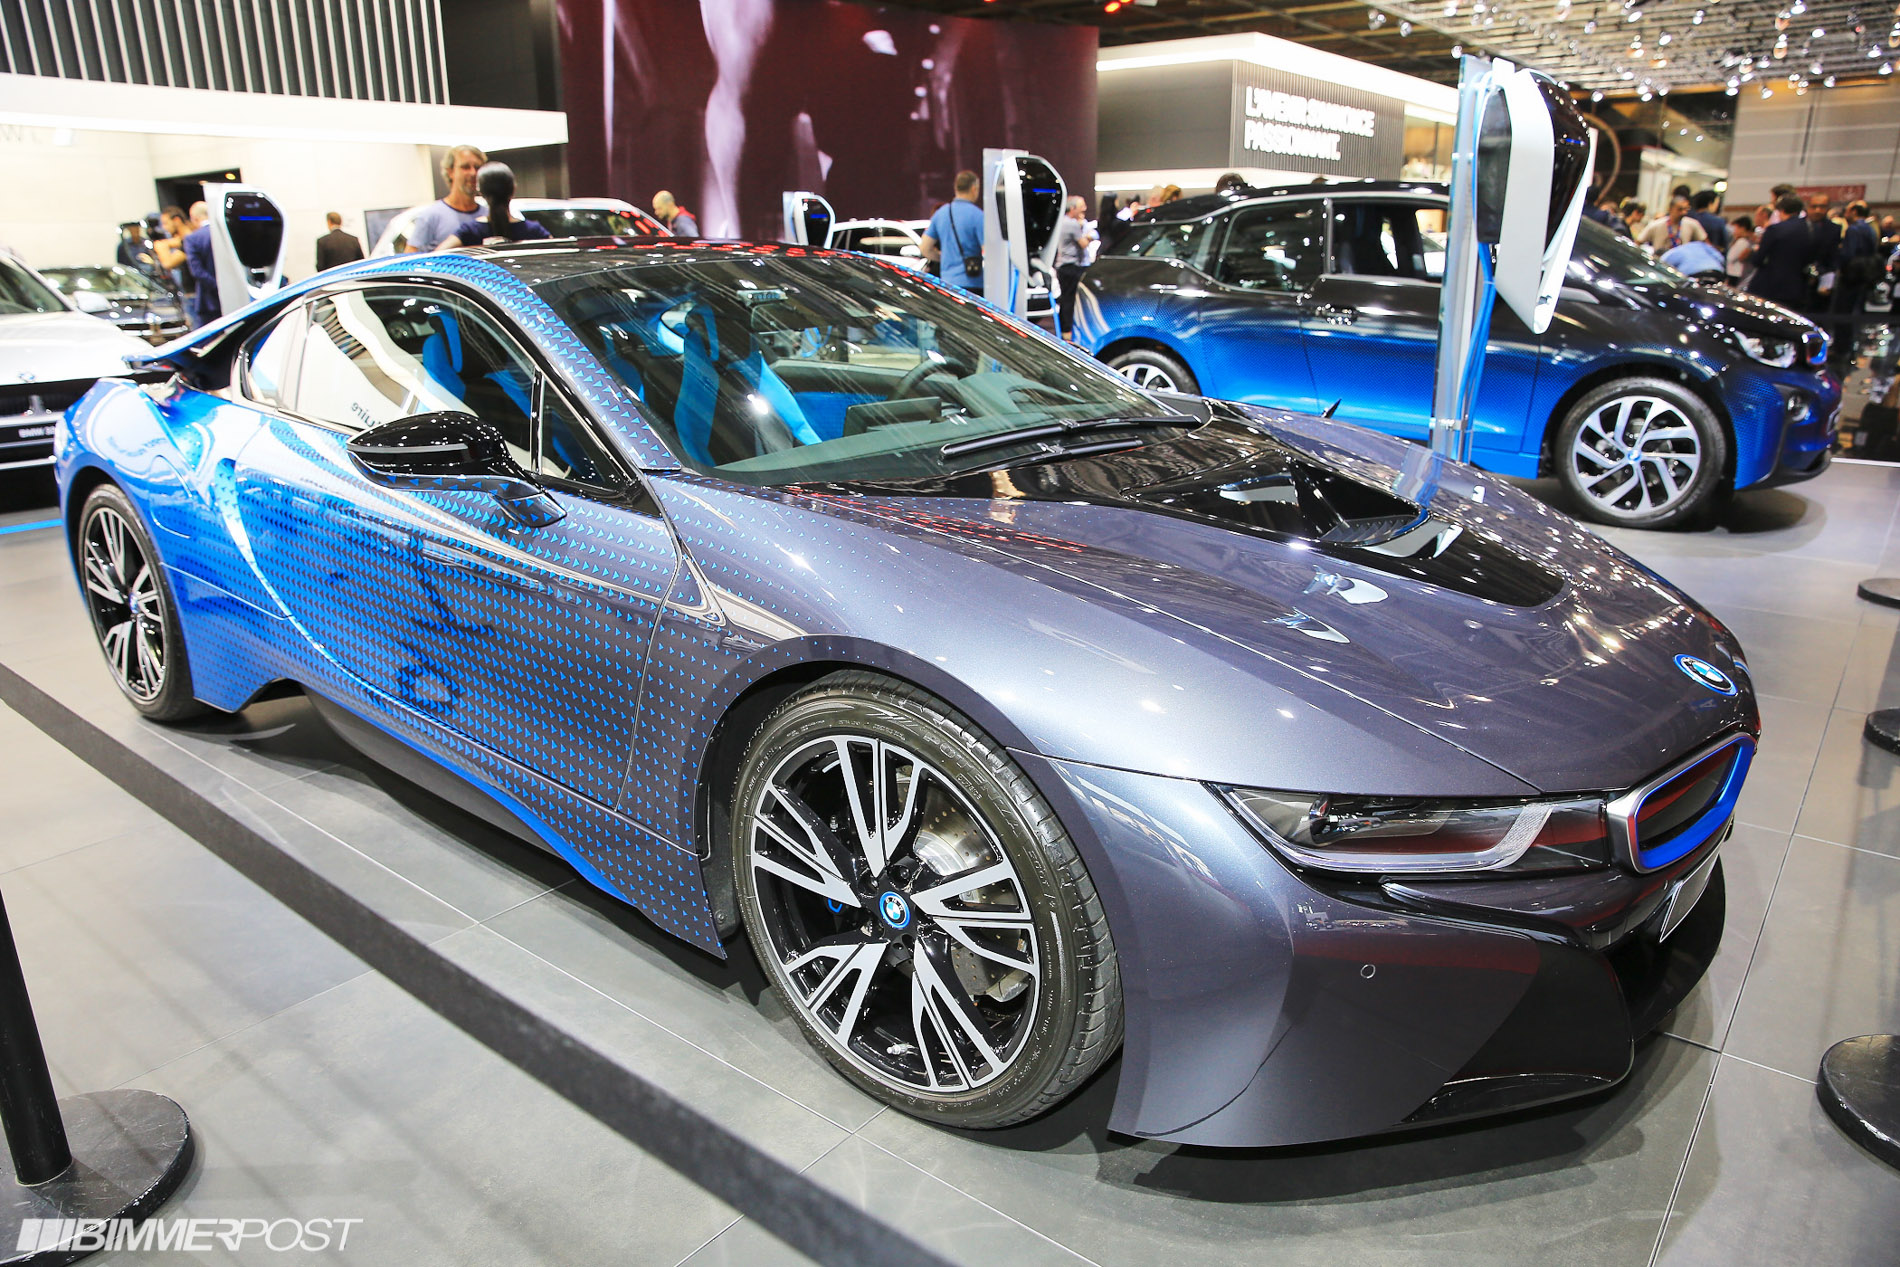 Bmw i8 and i3 garage italia crossfade concepts debut in paris for Garage bmw ivry